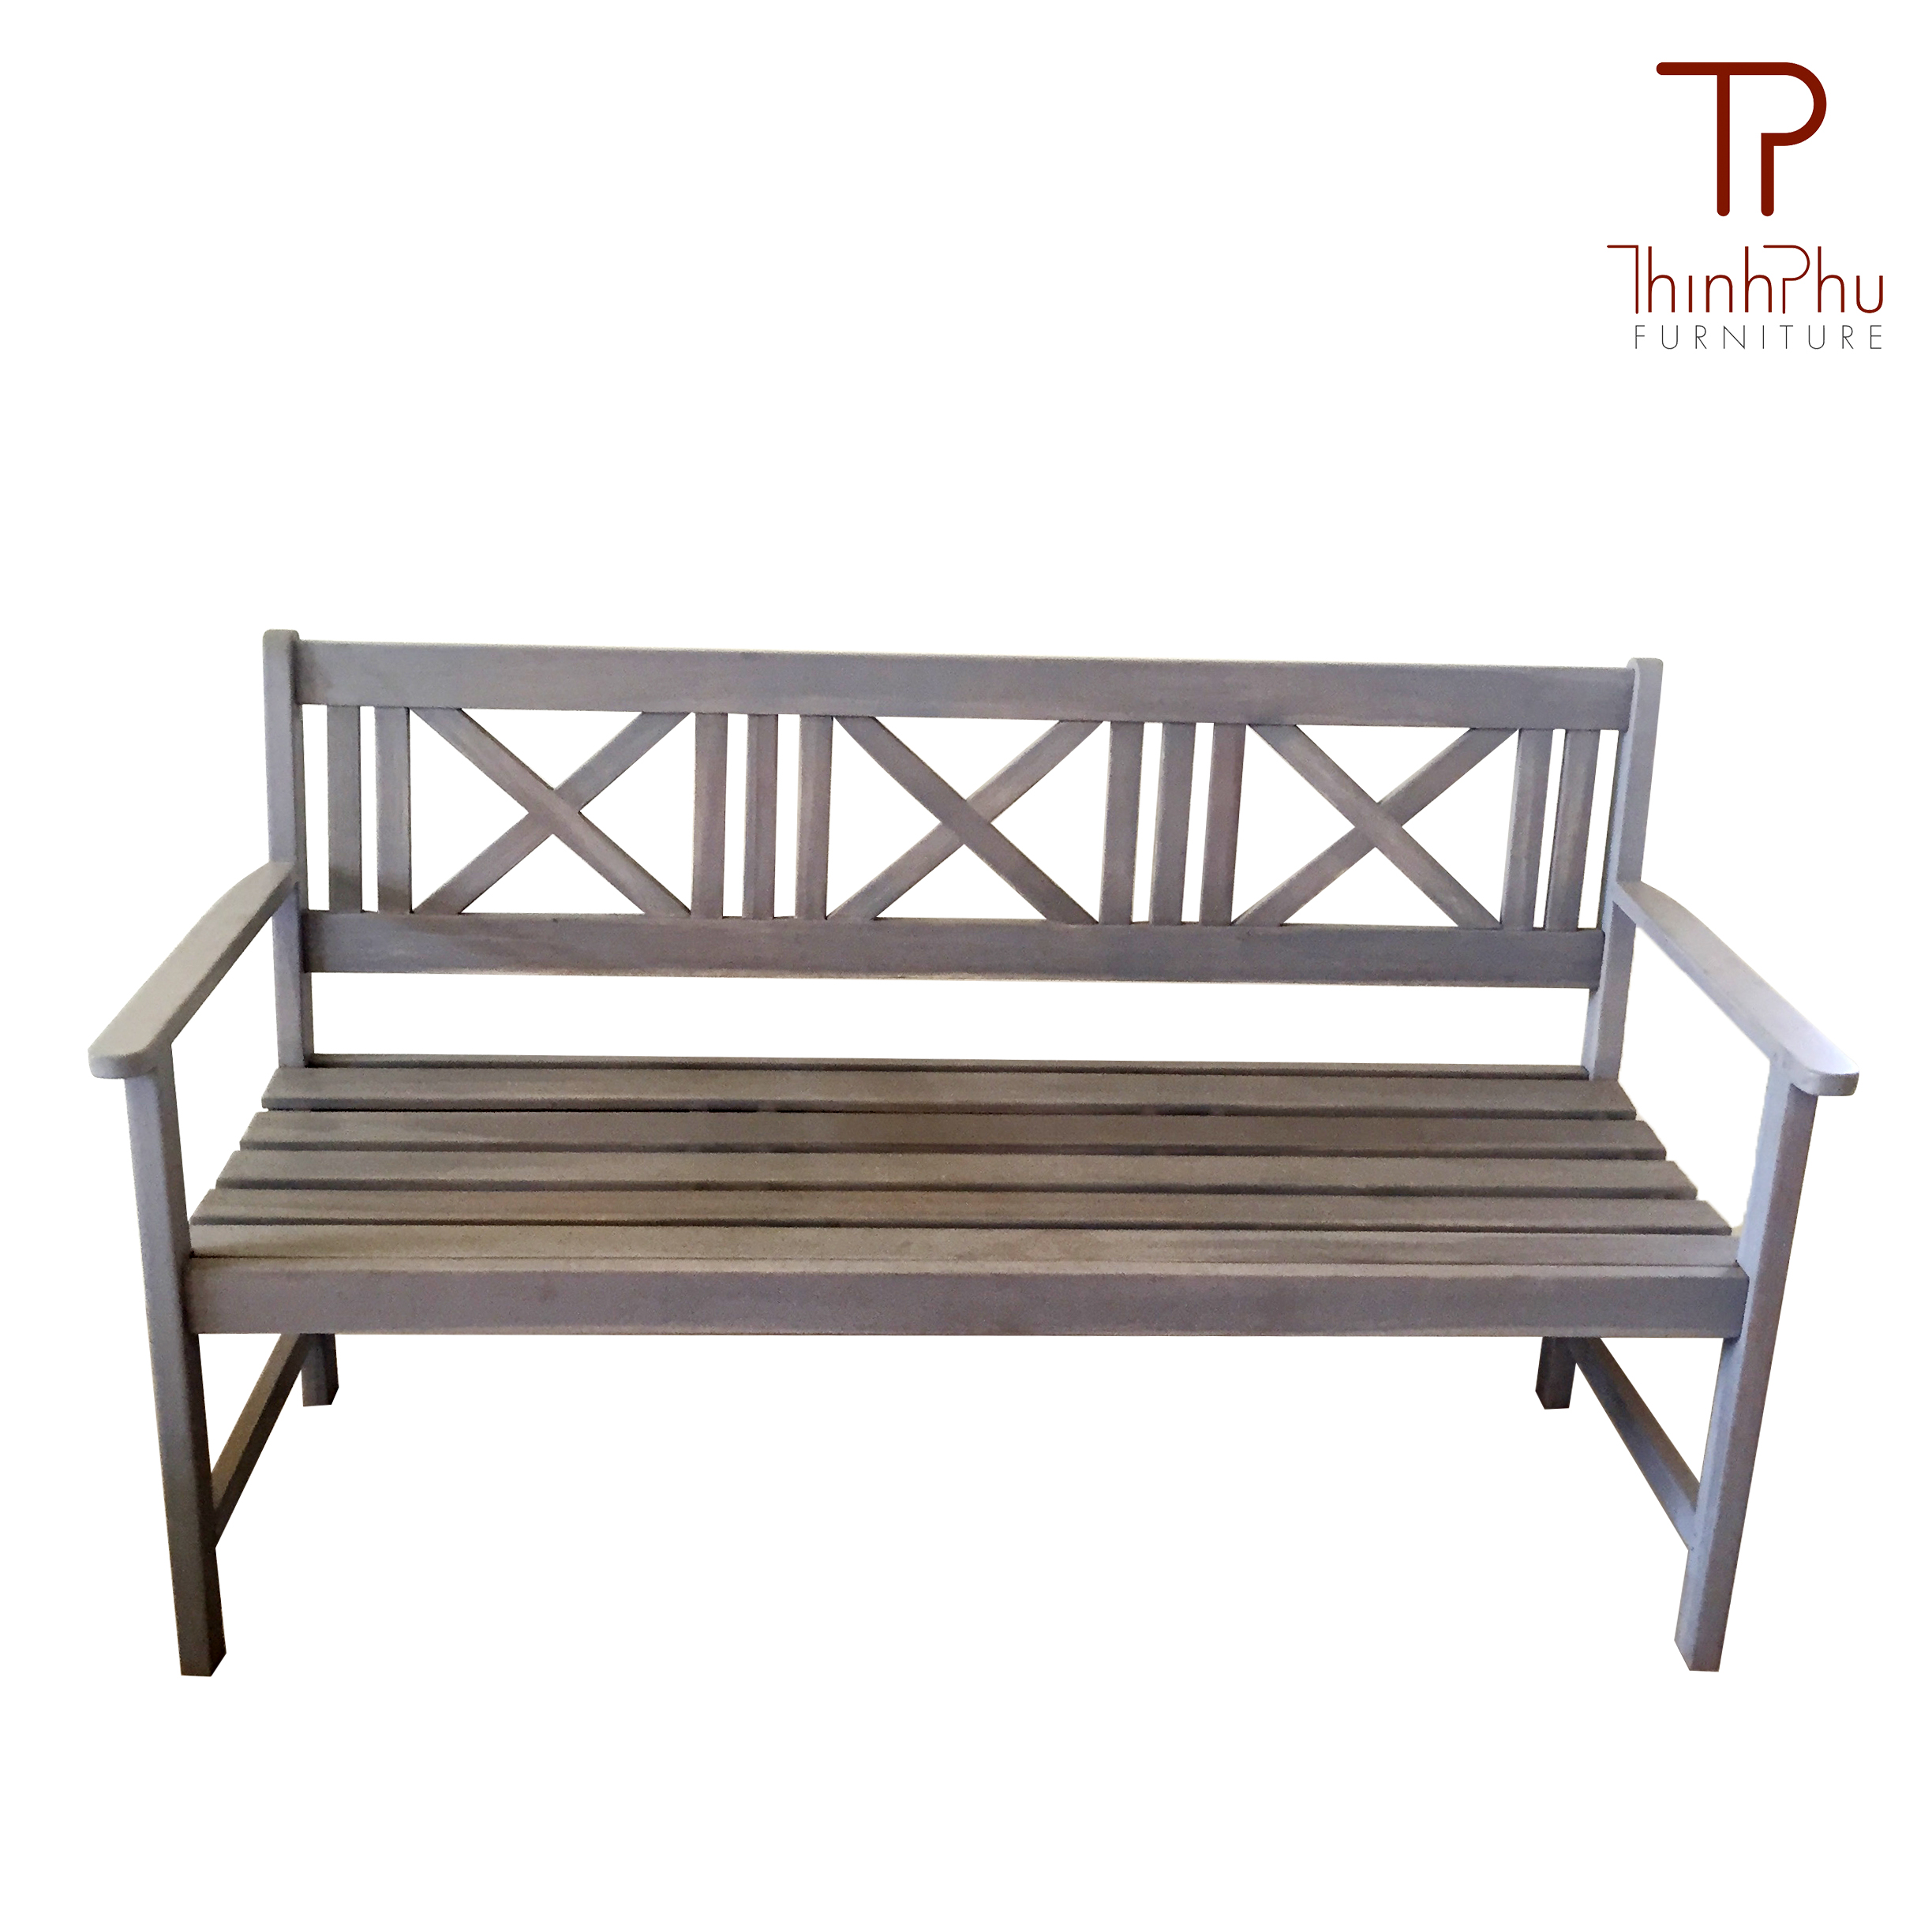 Vietnam outdoor furniture for all size business for Outdoor furniture vietnam